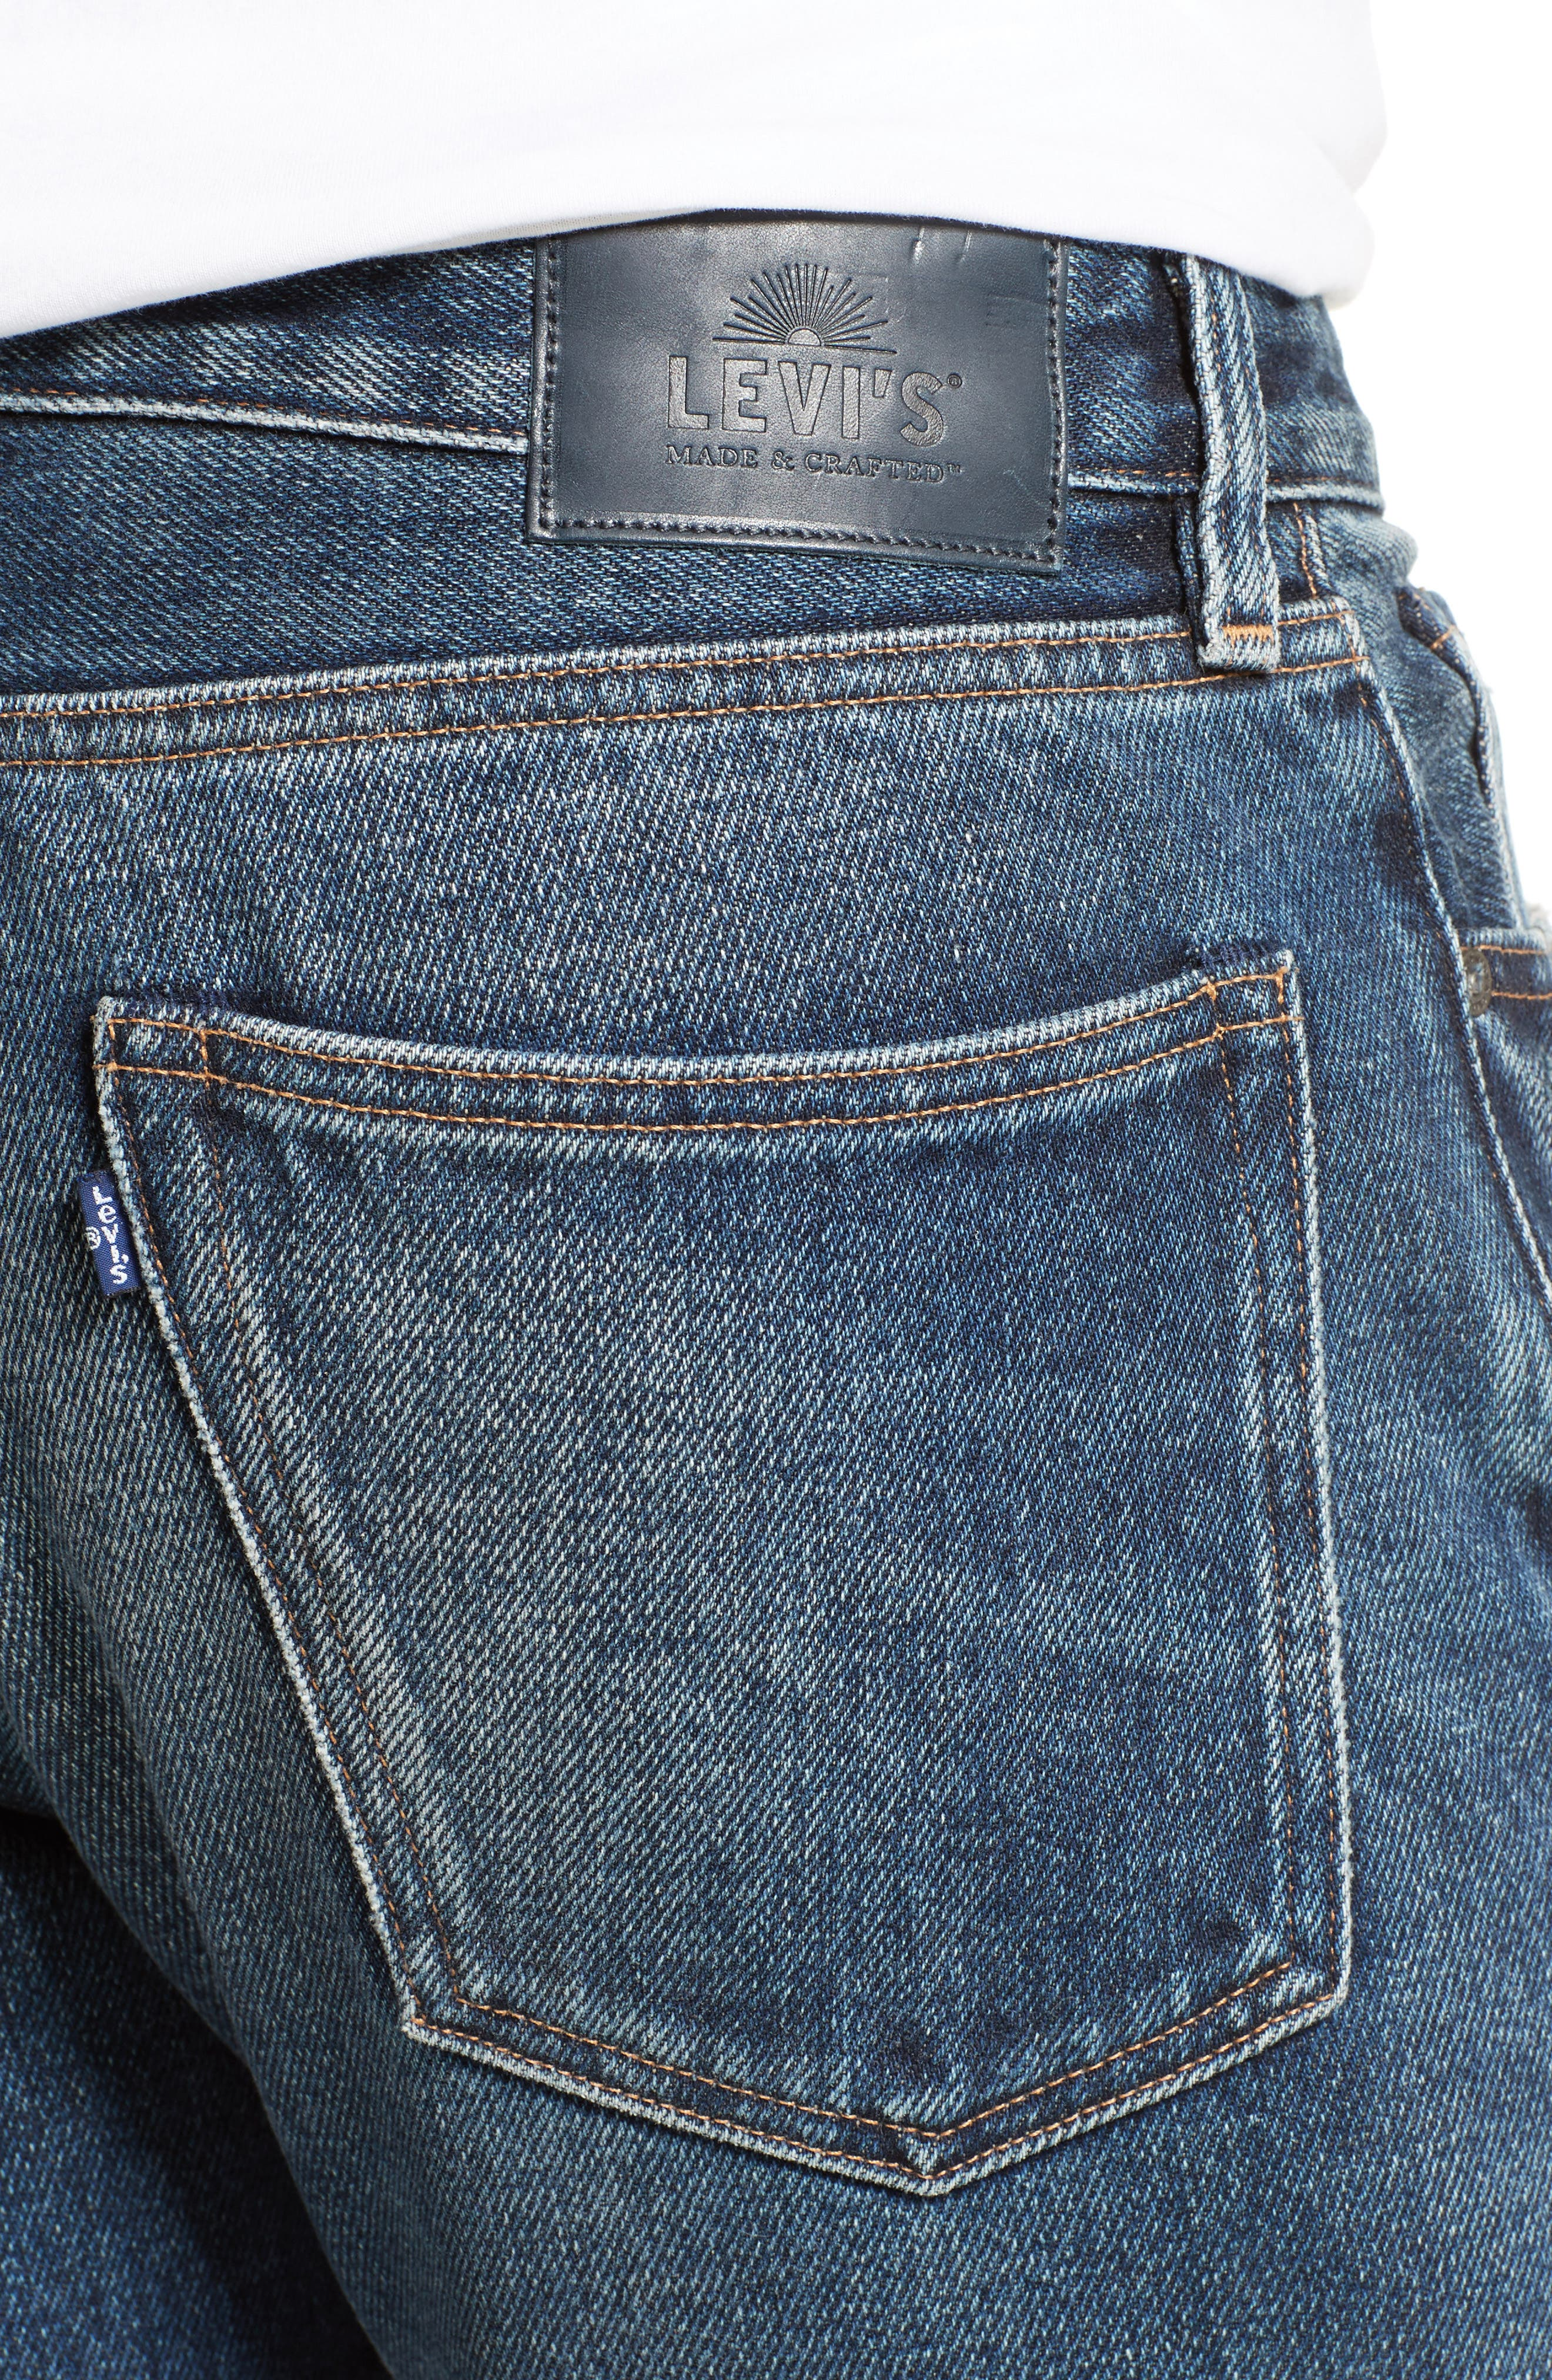 Alternate Image 4  - Levi's® Made & Crafted™ Tack Slim Fit Jeans